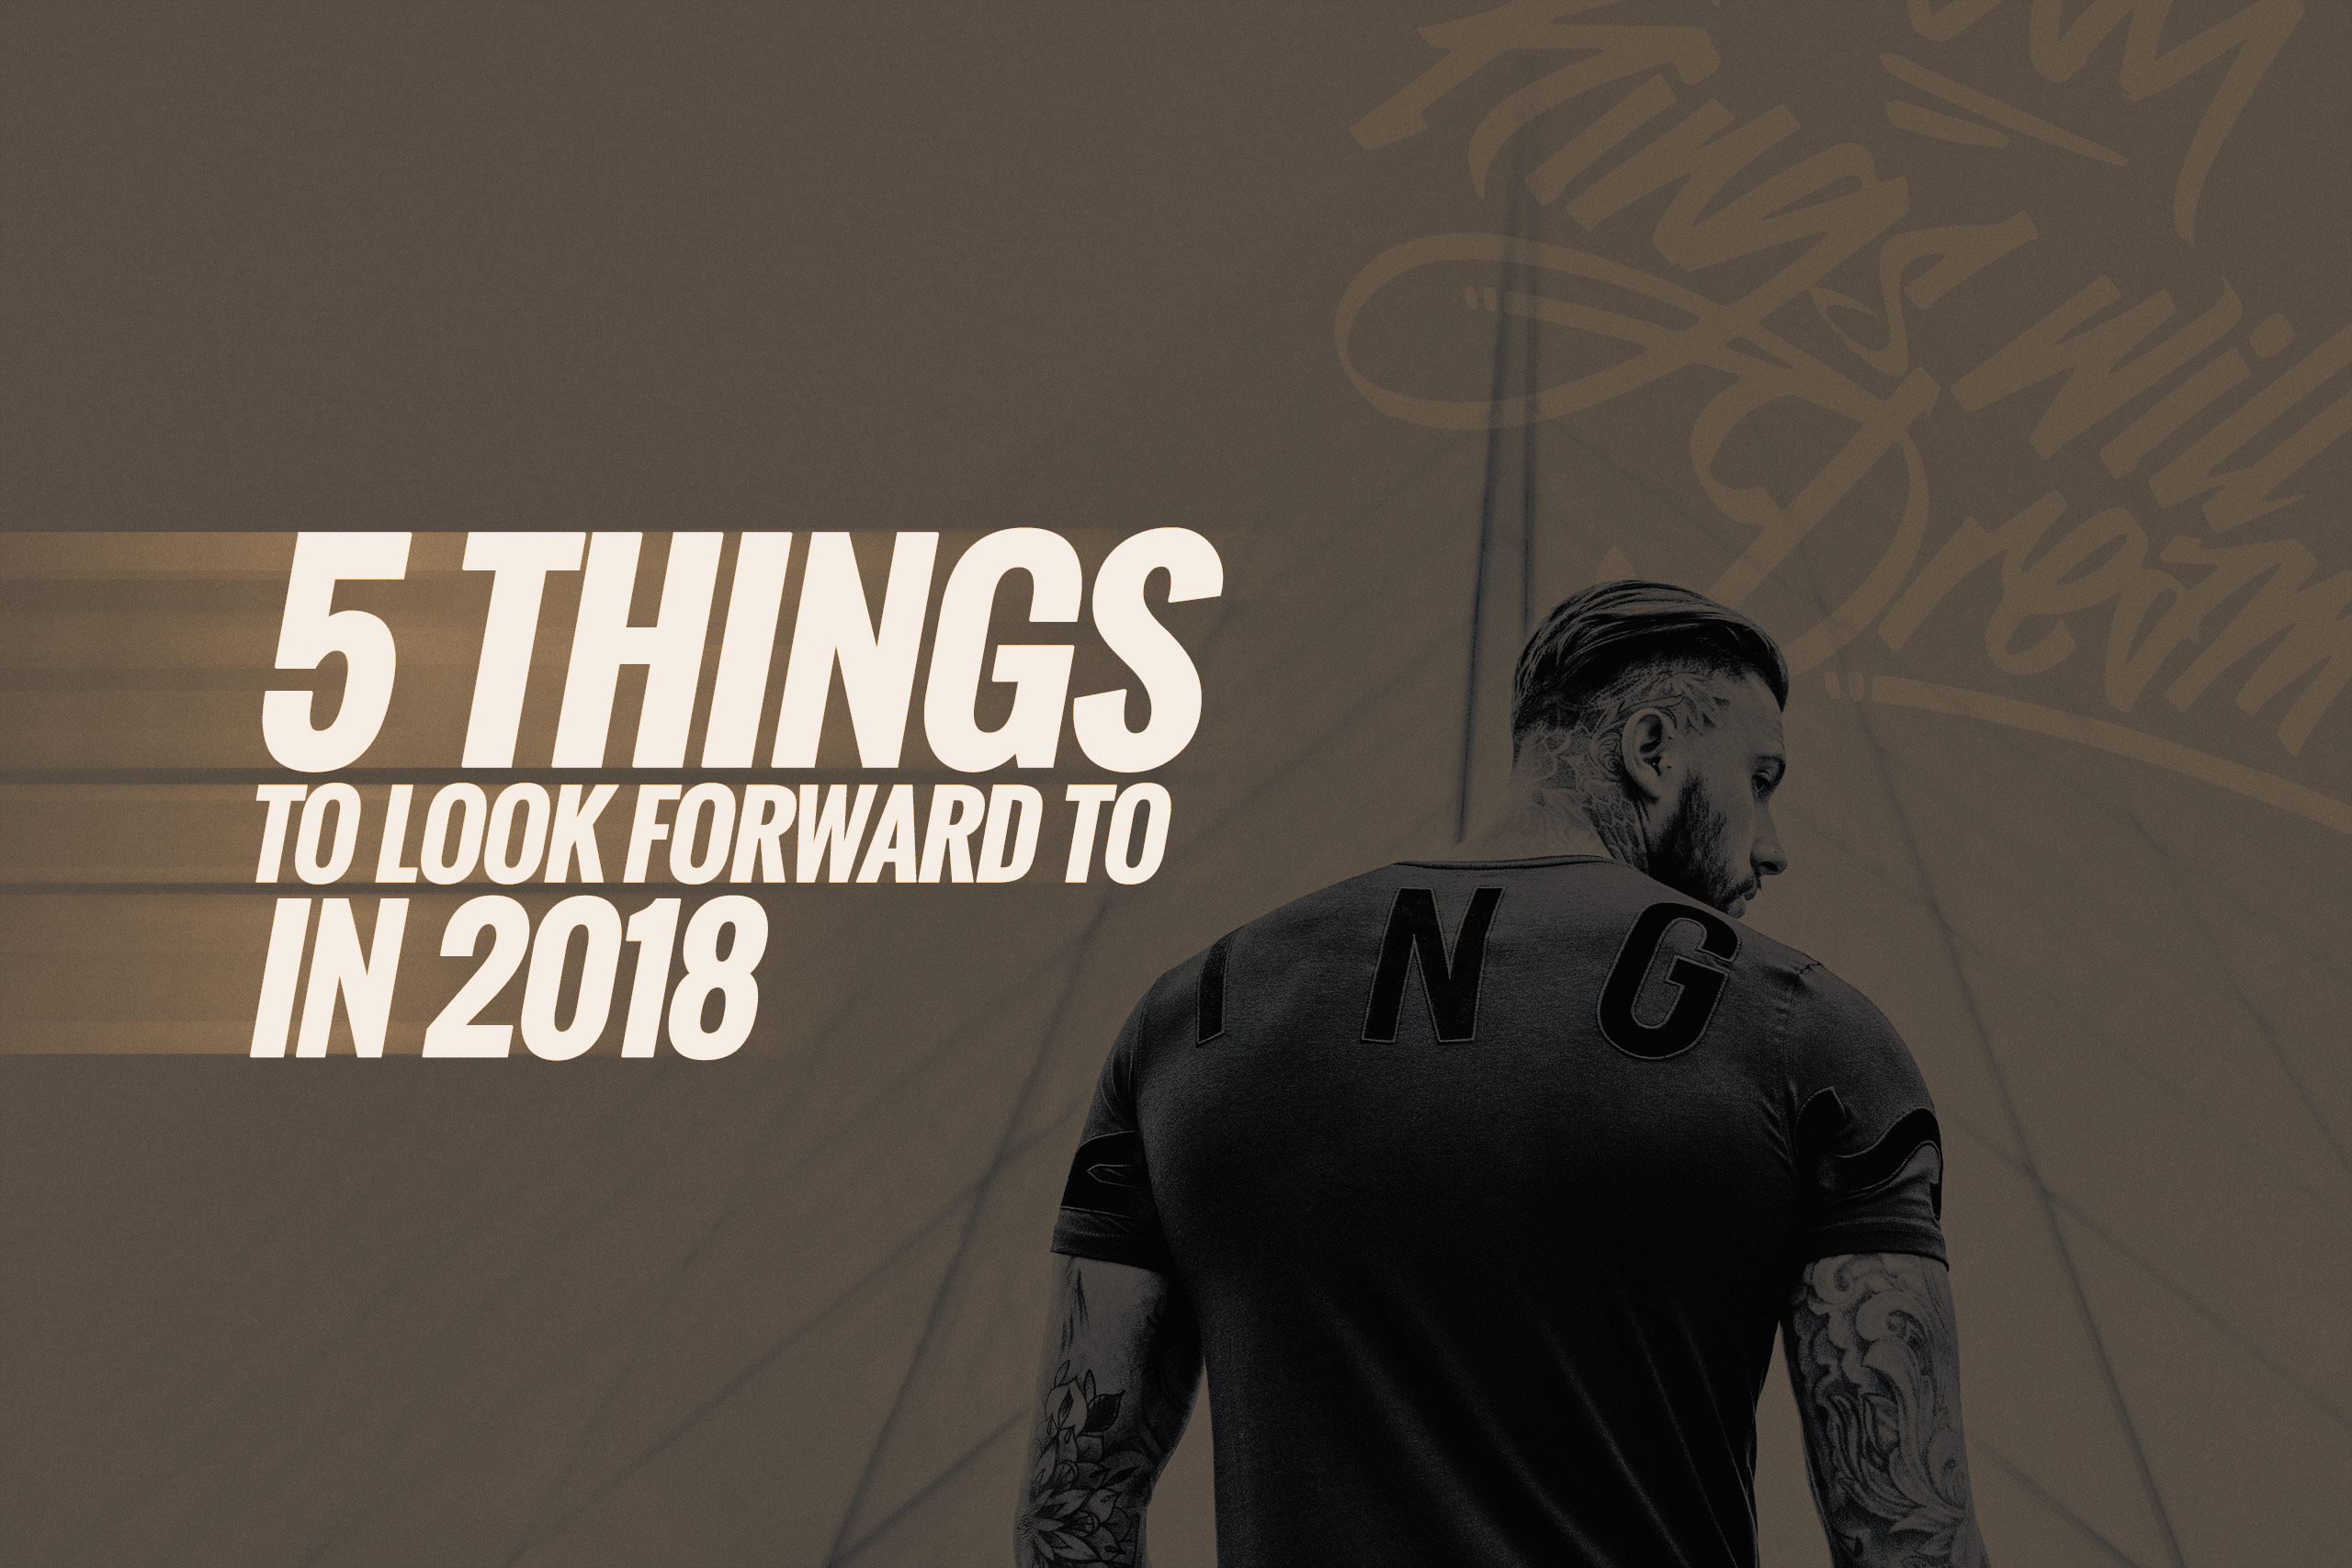 5 things to look forward to in 2018